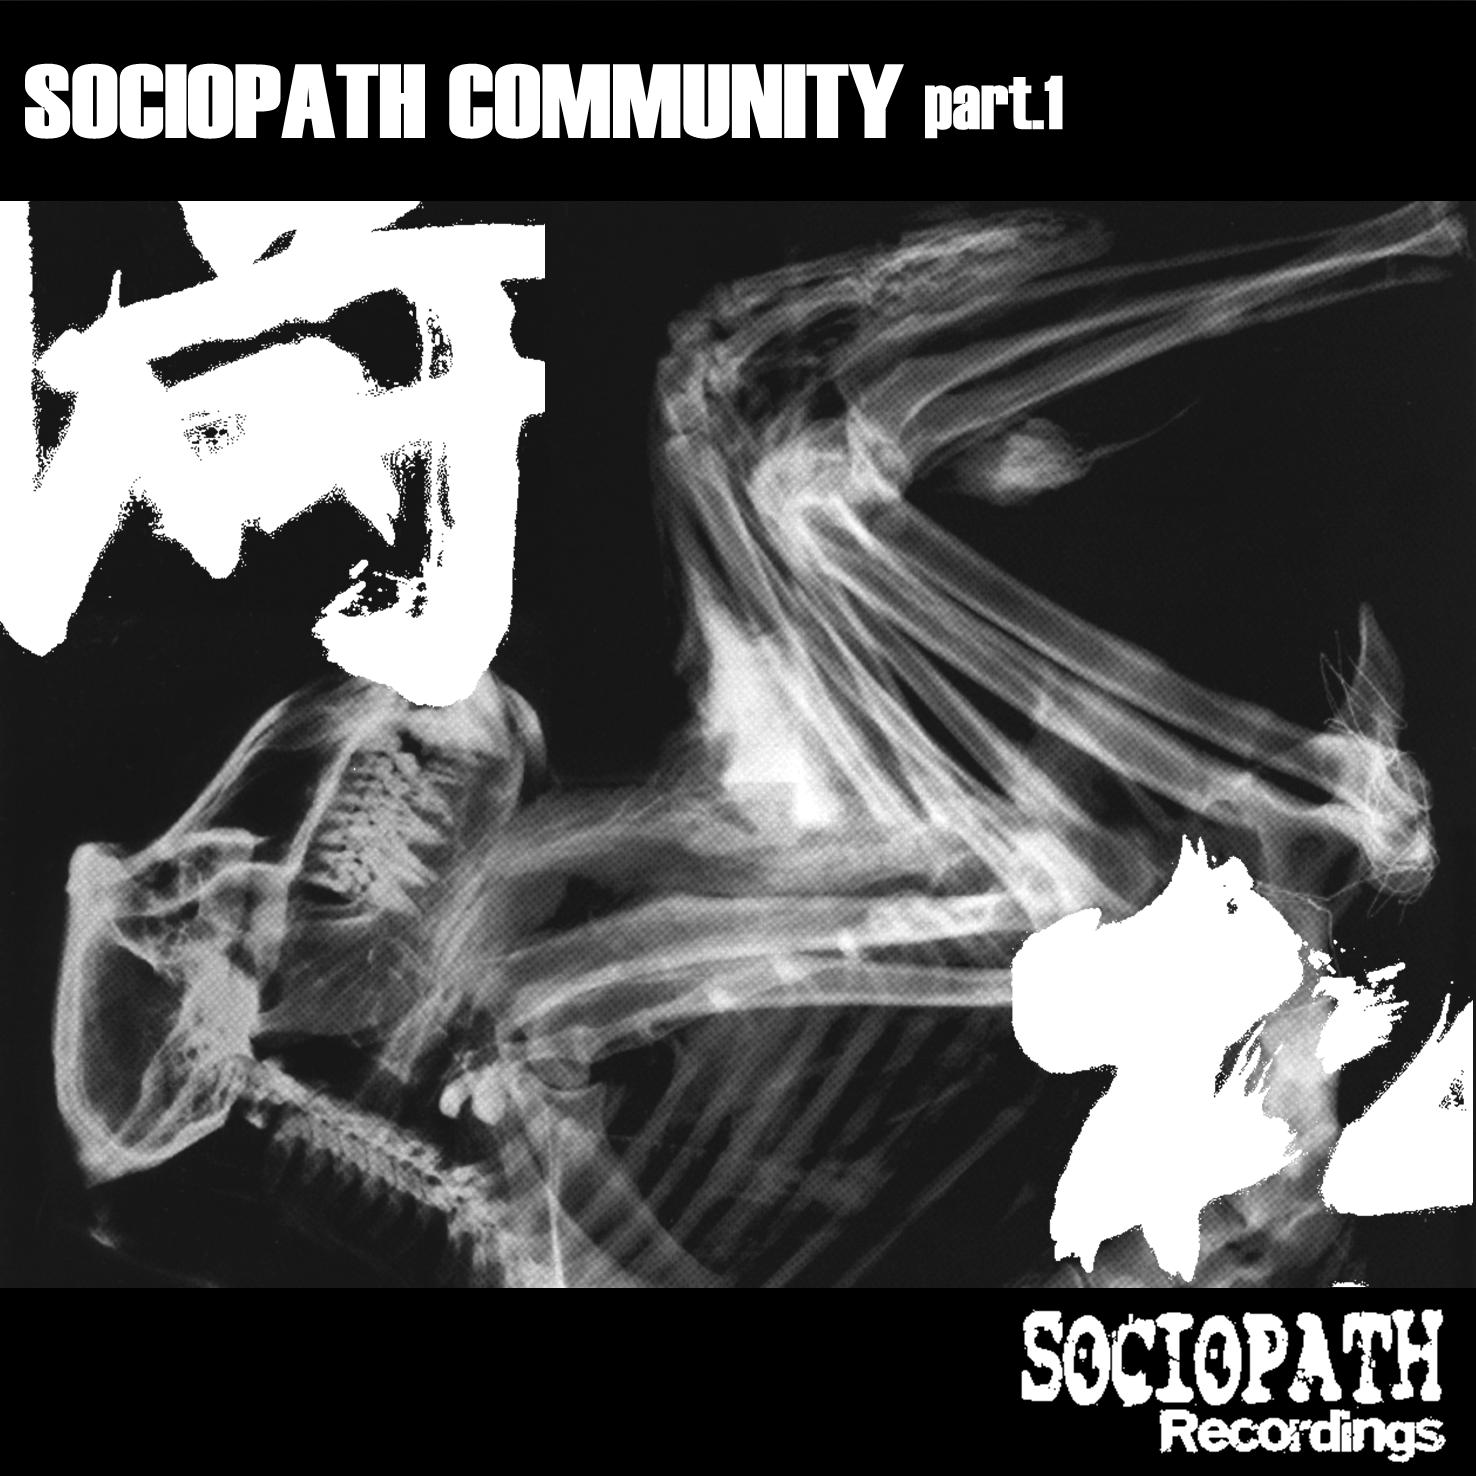 Sociopath 100th Release: Various Artists - Sociopath Community.BreakCore, MashUp, Hardcore, Ragga, DubStep, Gabbenni Amenassi - FoolingBit